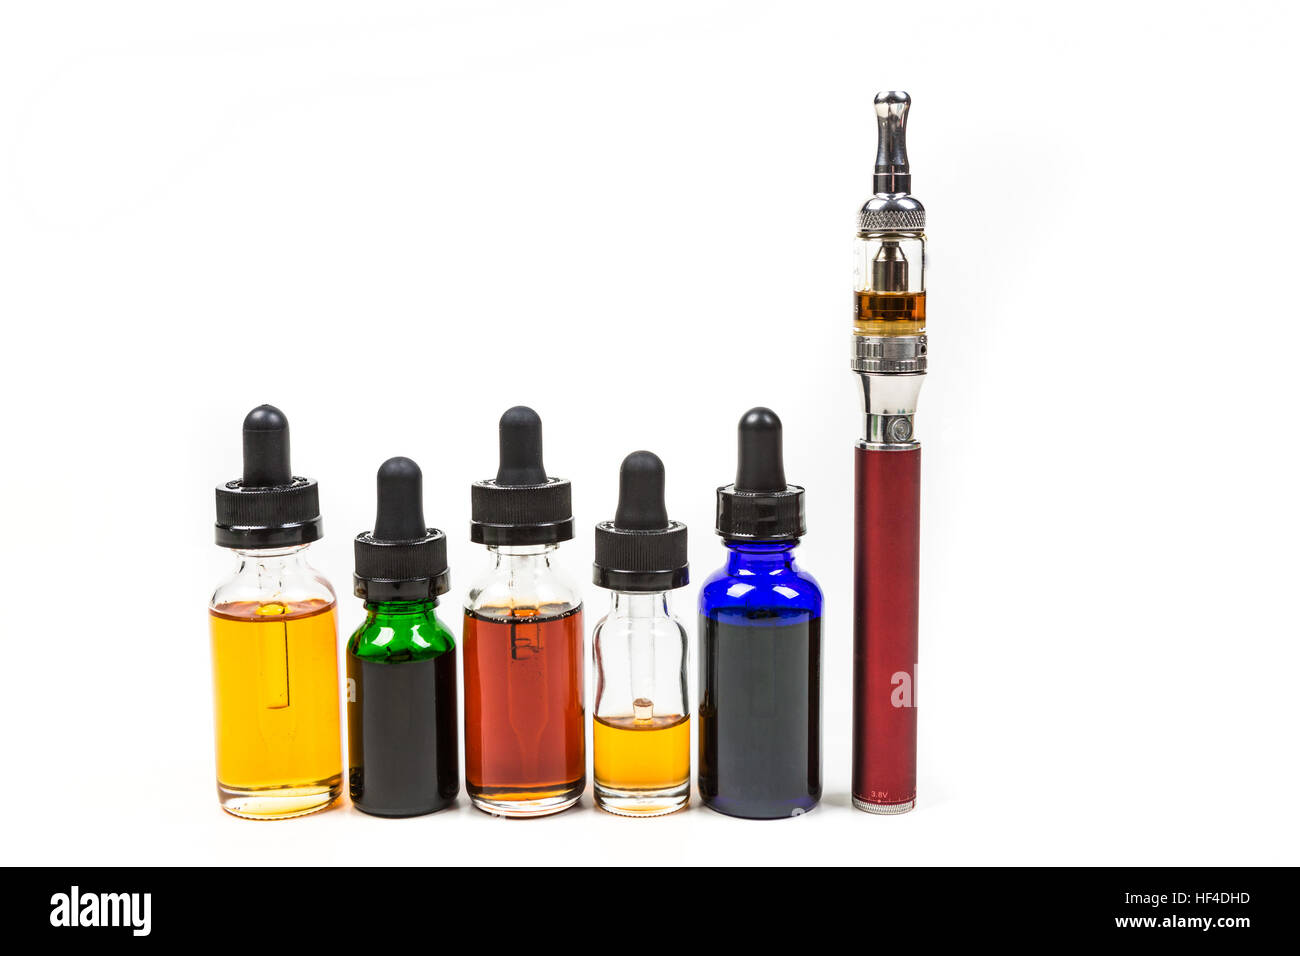 Assorted flavors of vape juice and an ecigarette isolated on white background - Stock Image